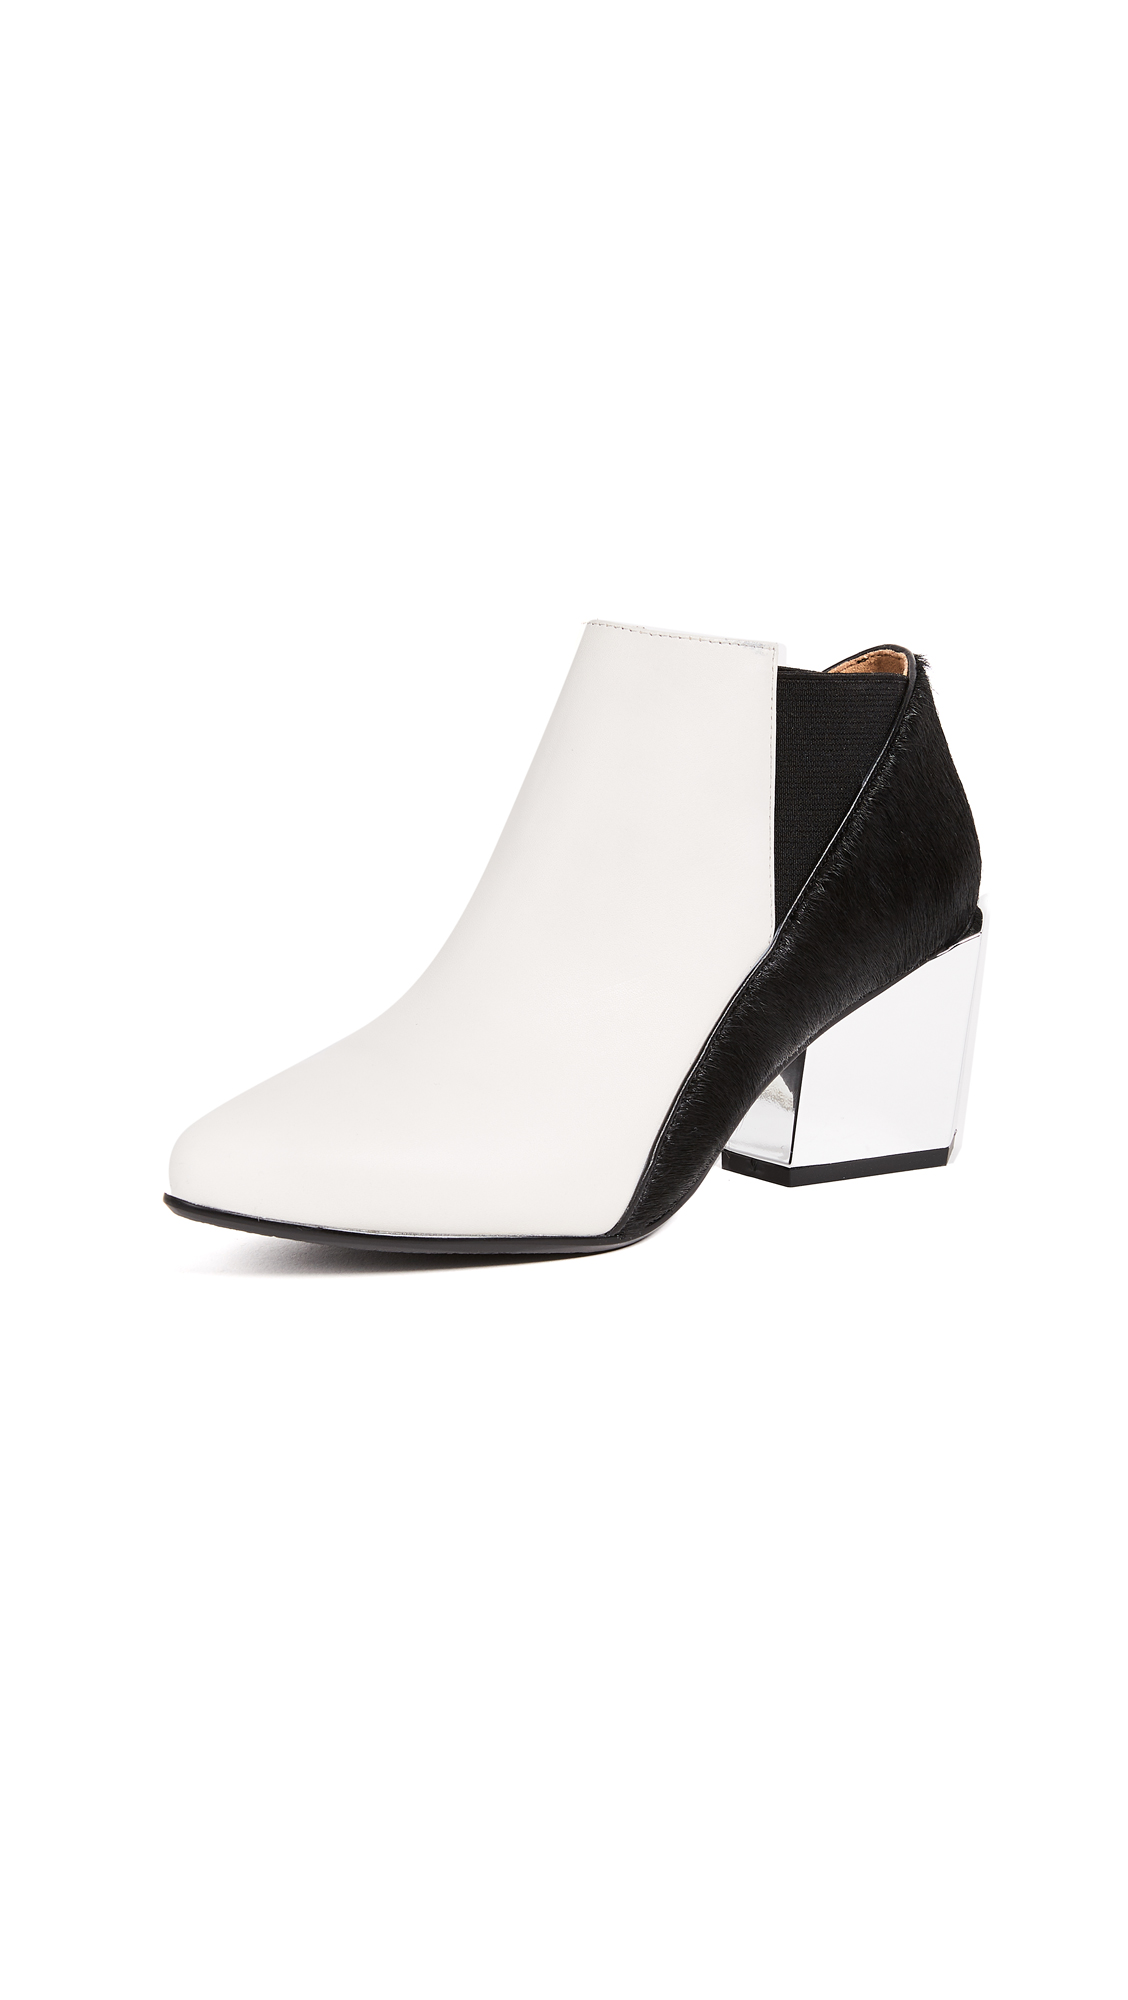 United Nude Tetra Jacky Mid Booties - White/Black